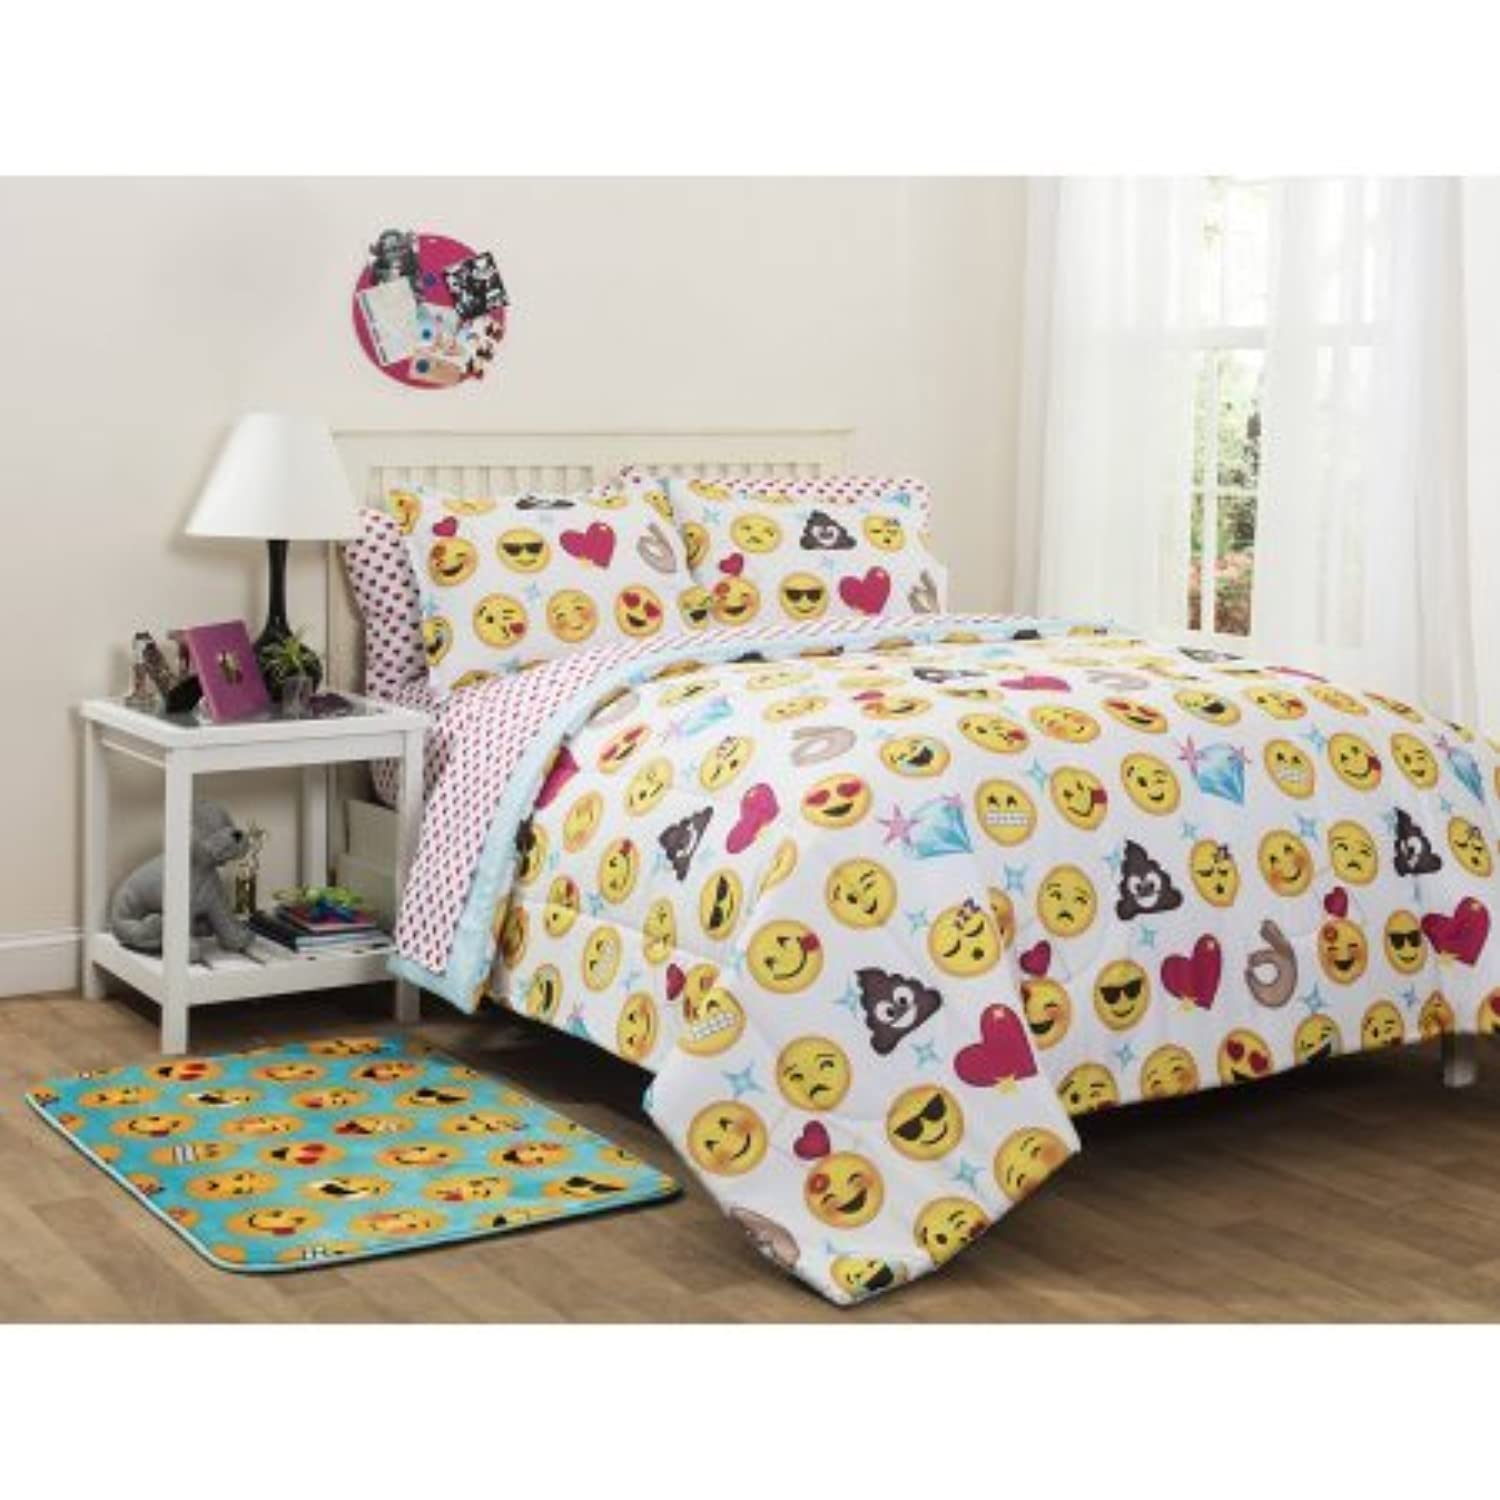 Emoji bed comfortor bedding sets full size for Full bed bedroom sets